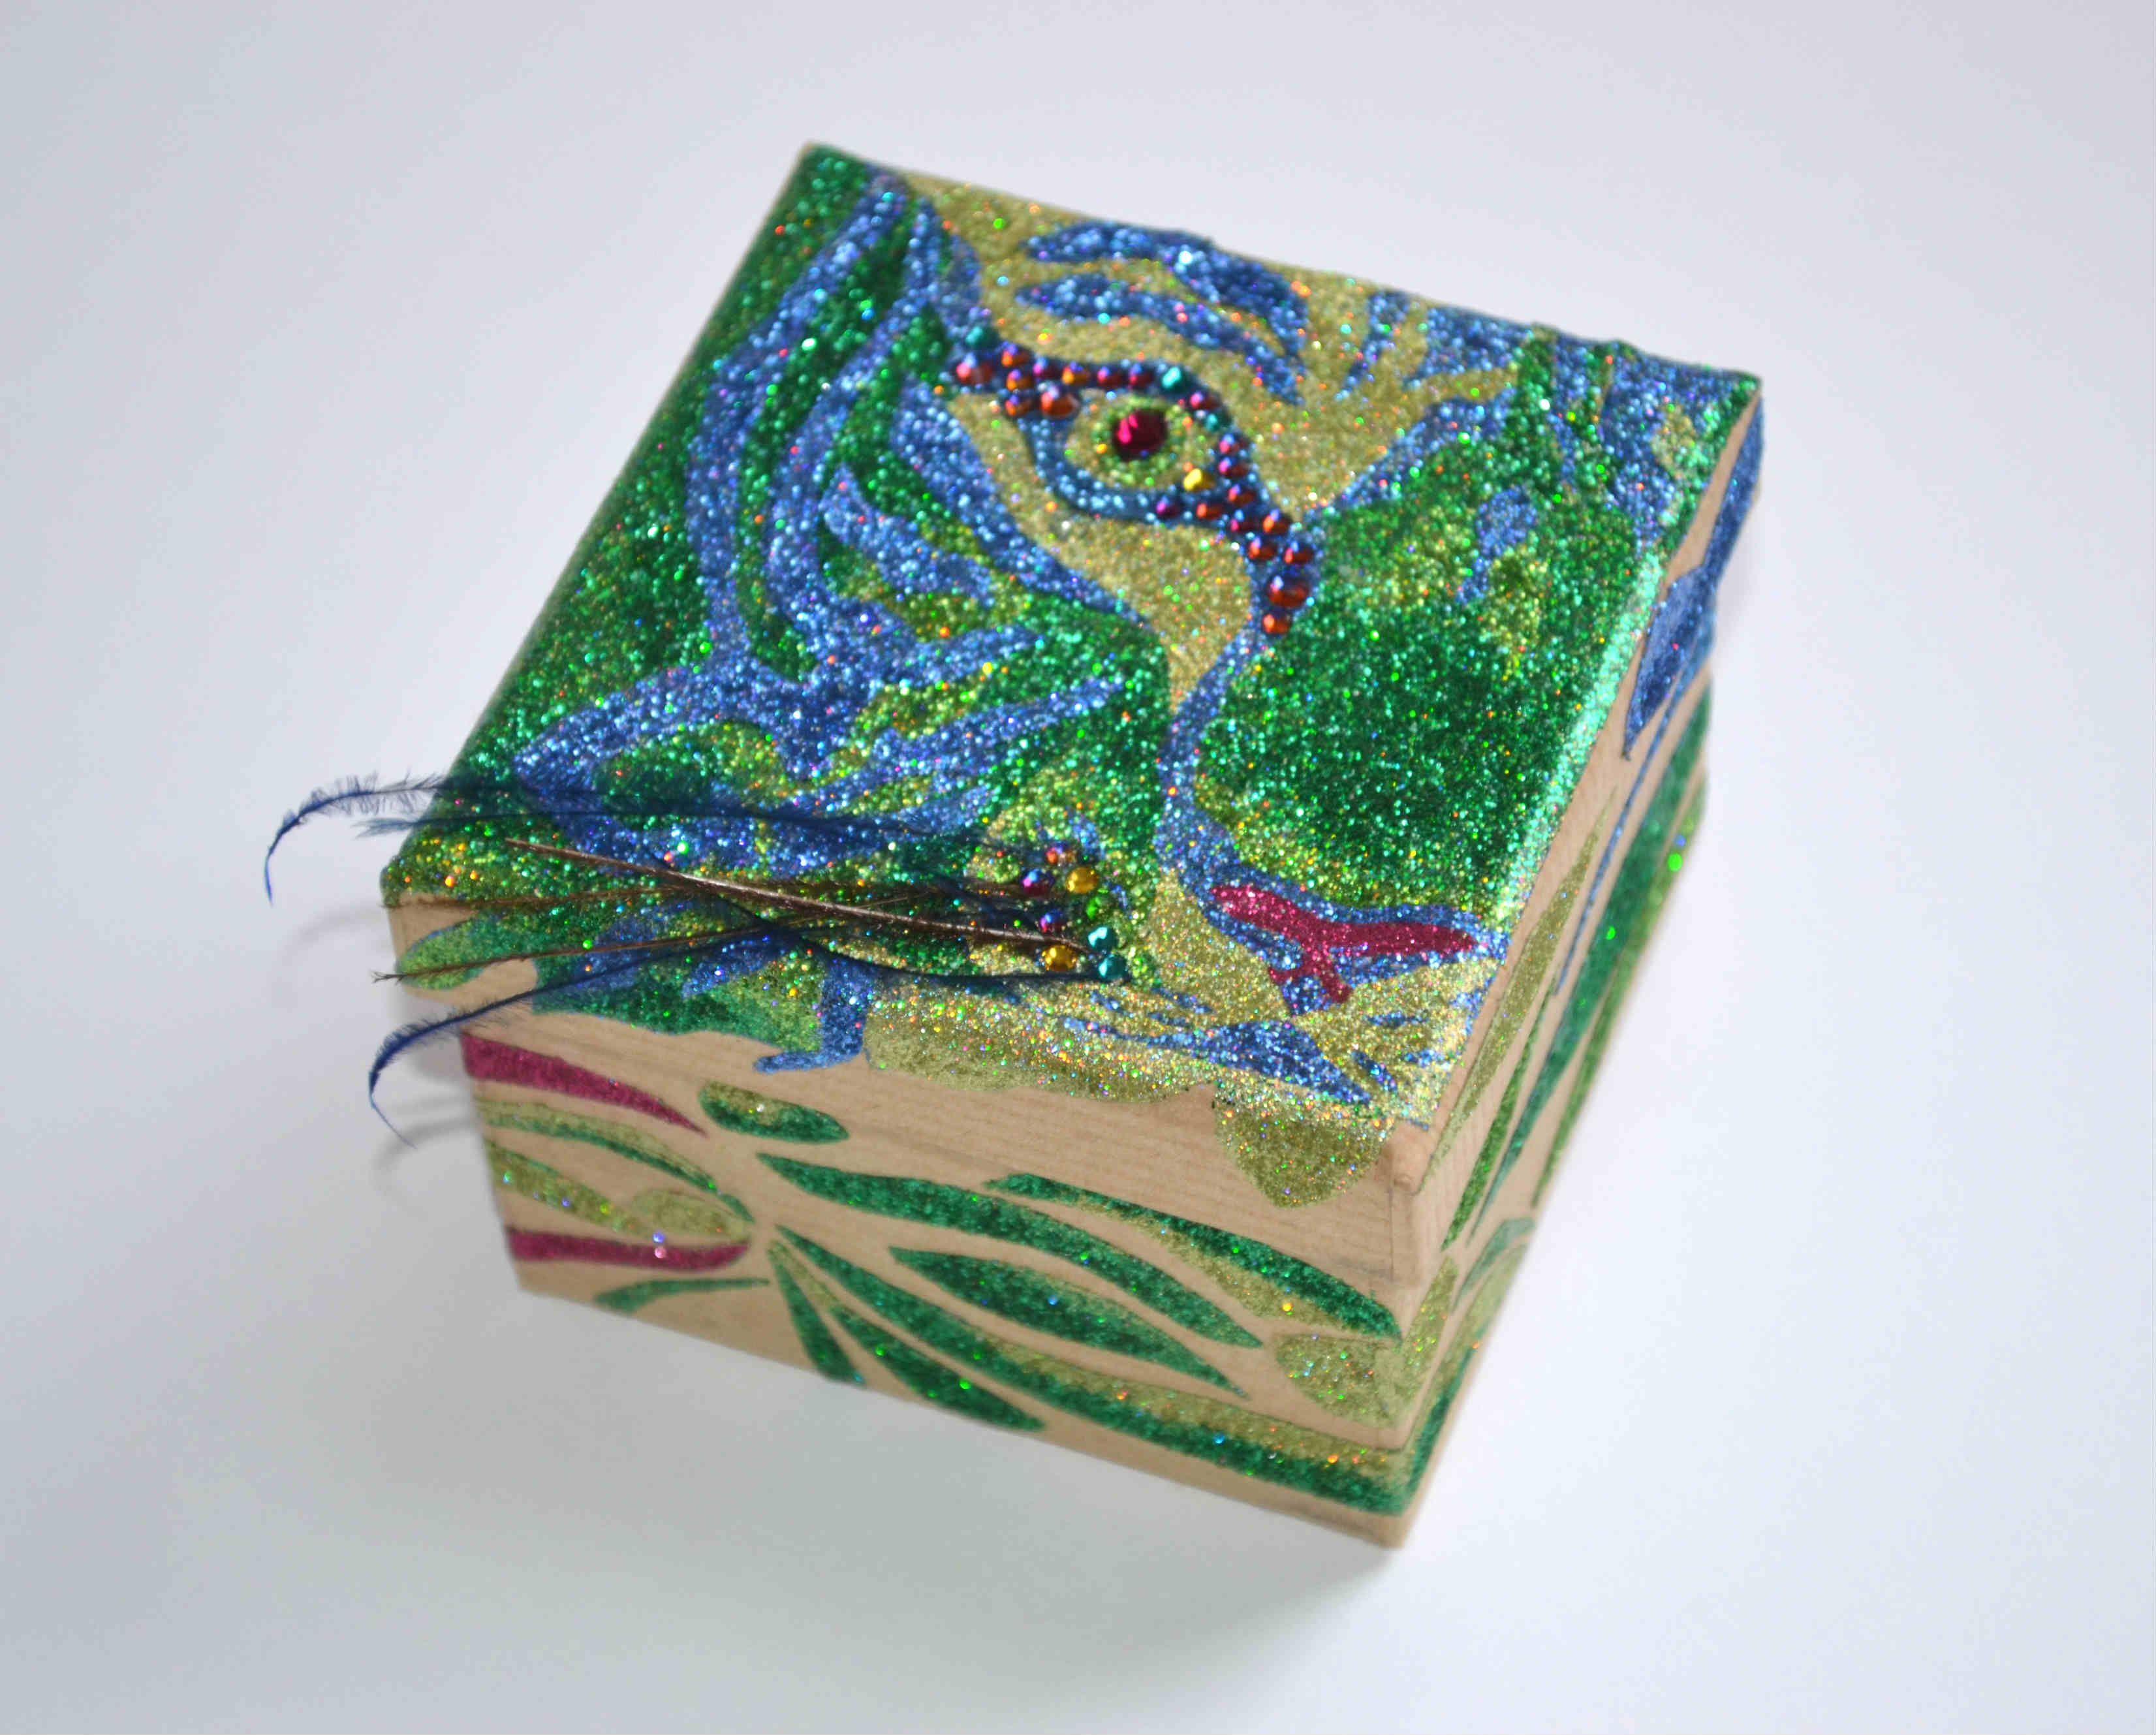 Tigress One-off Gift Box is for sale in iHubbub's online shop